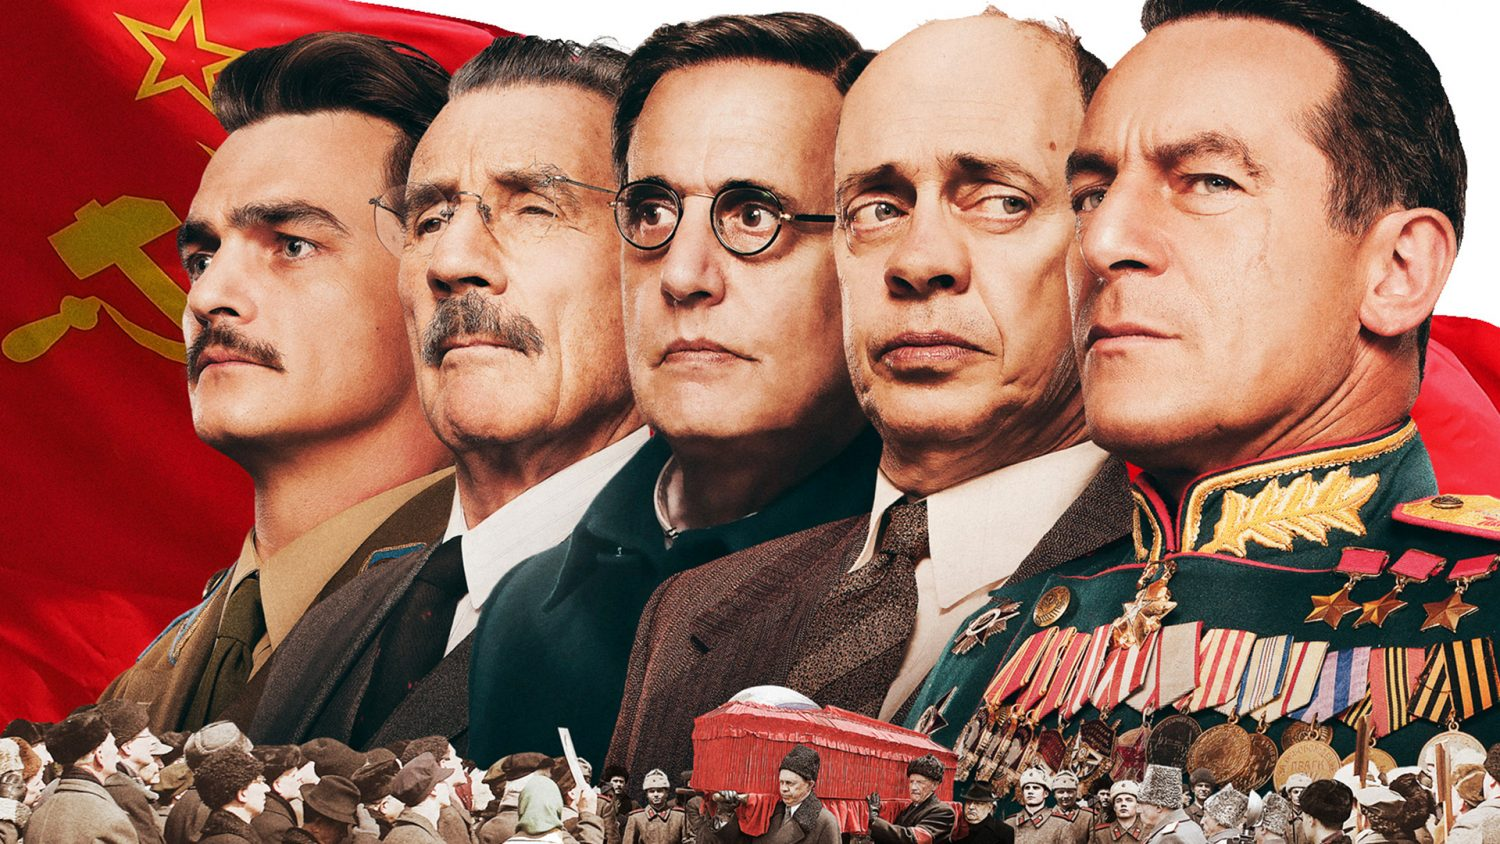 Crítica: A Morte de Stalin (The Death of Stalin, EUA, França, Reino Unido, 2018)